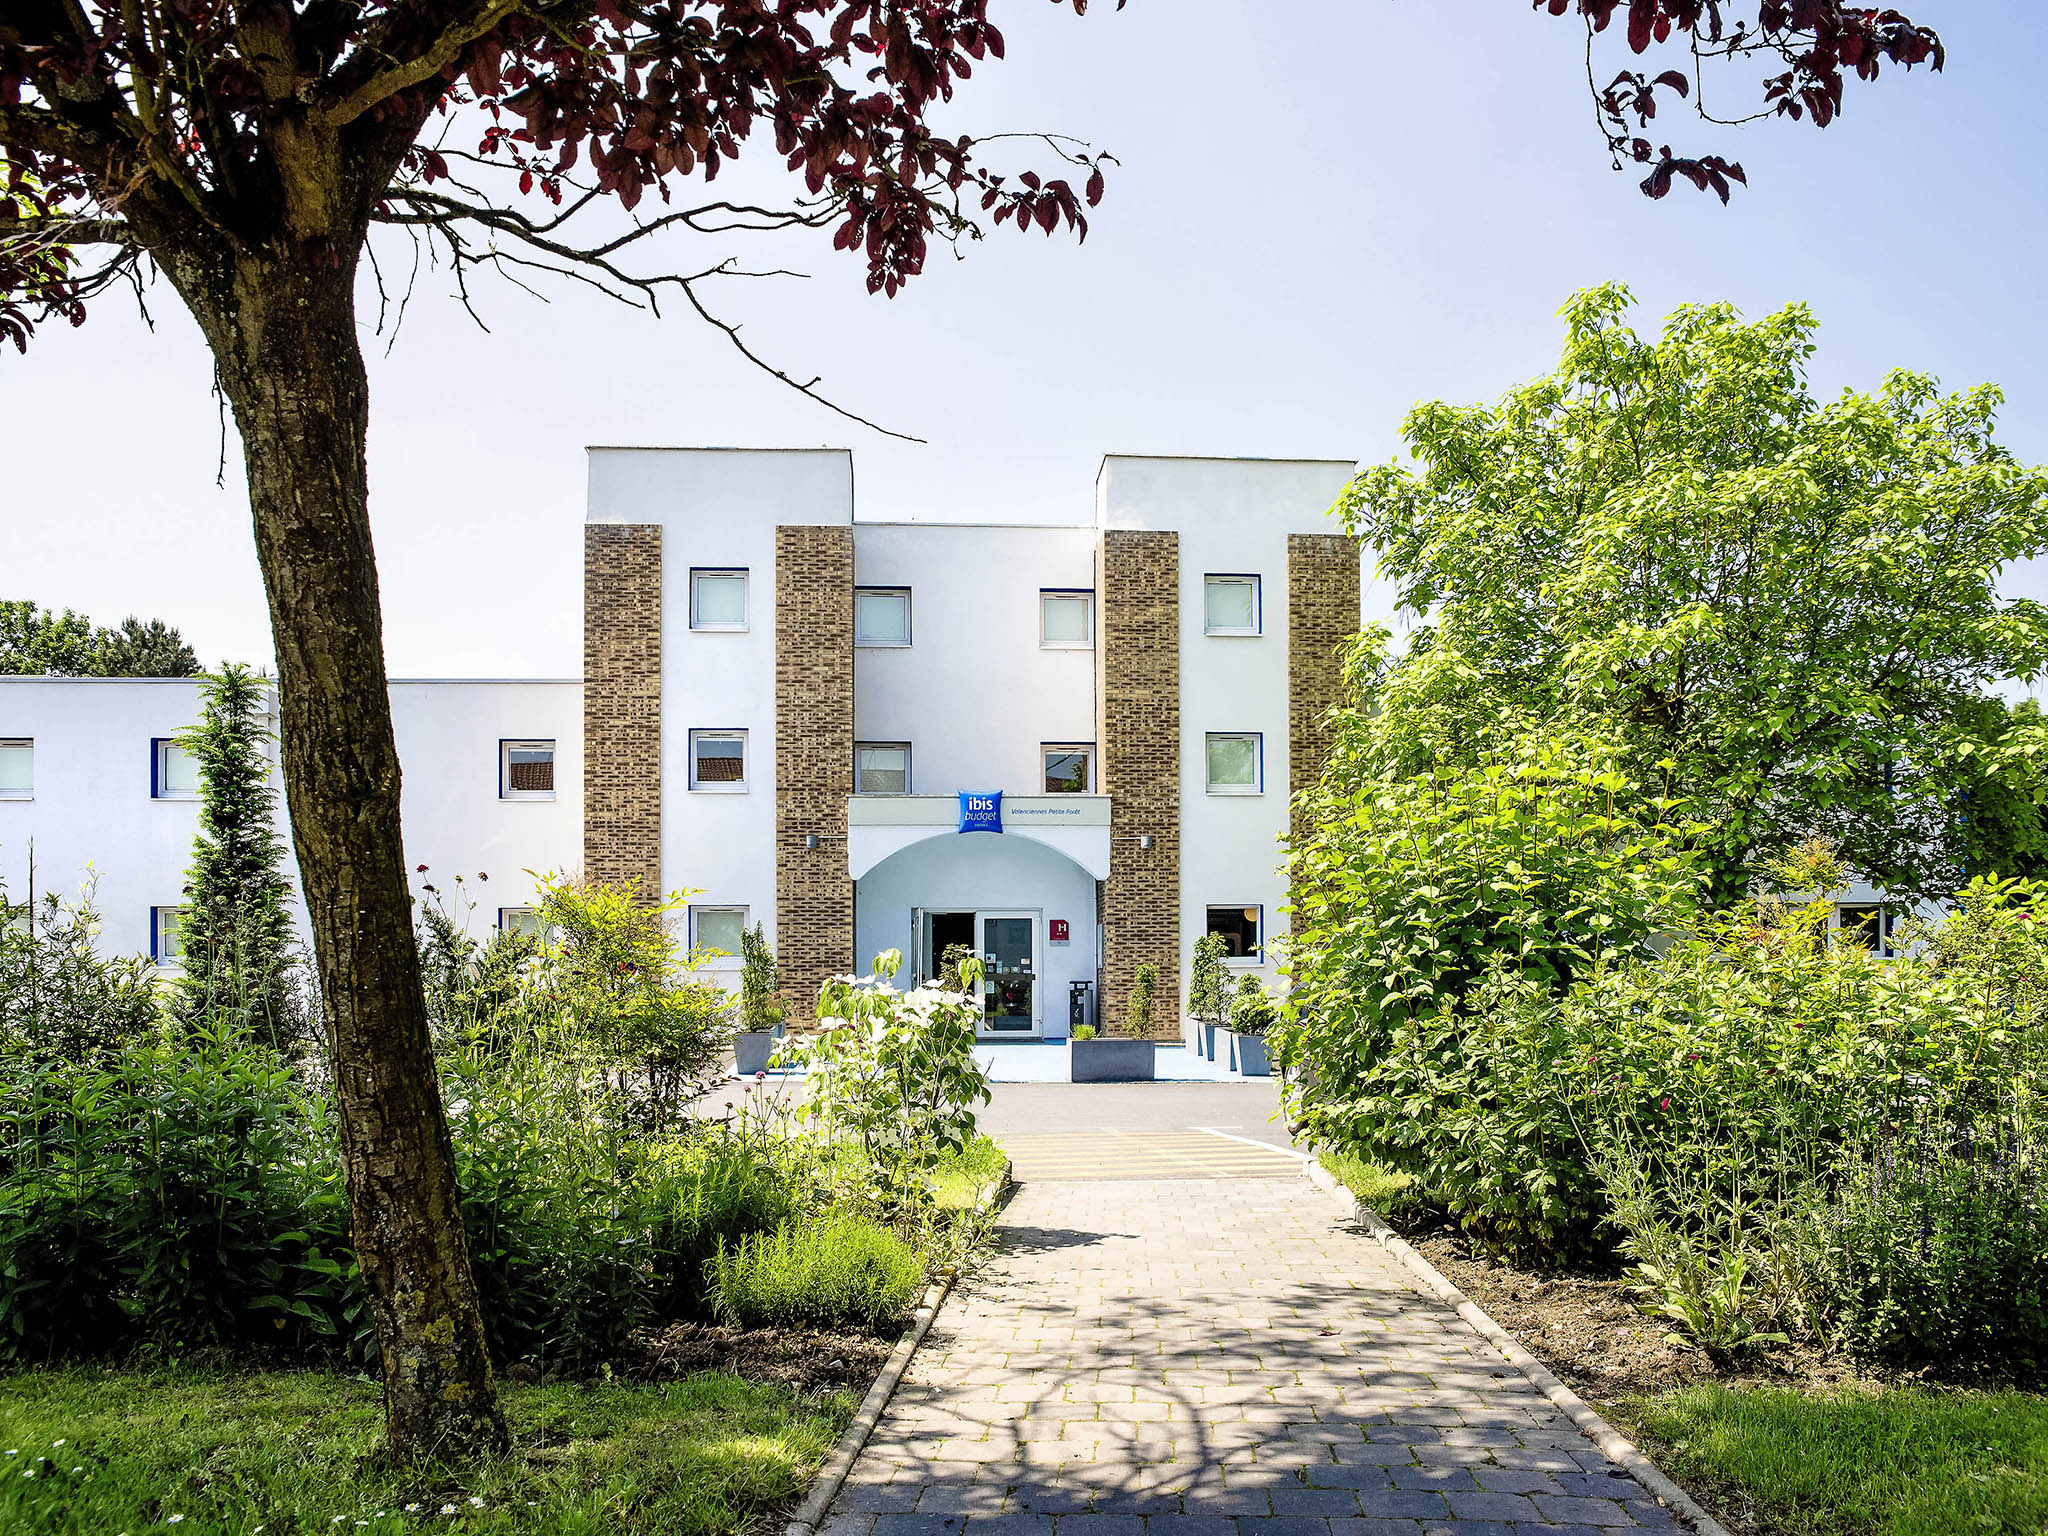 Hotell – ibis budget Valenciennes Petite Forêt